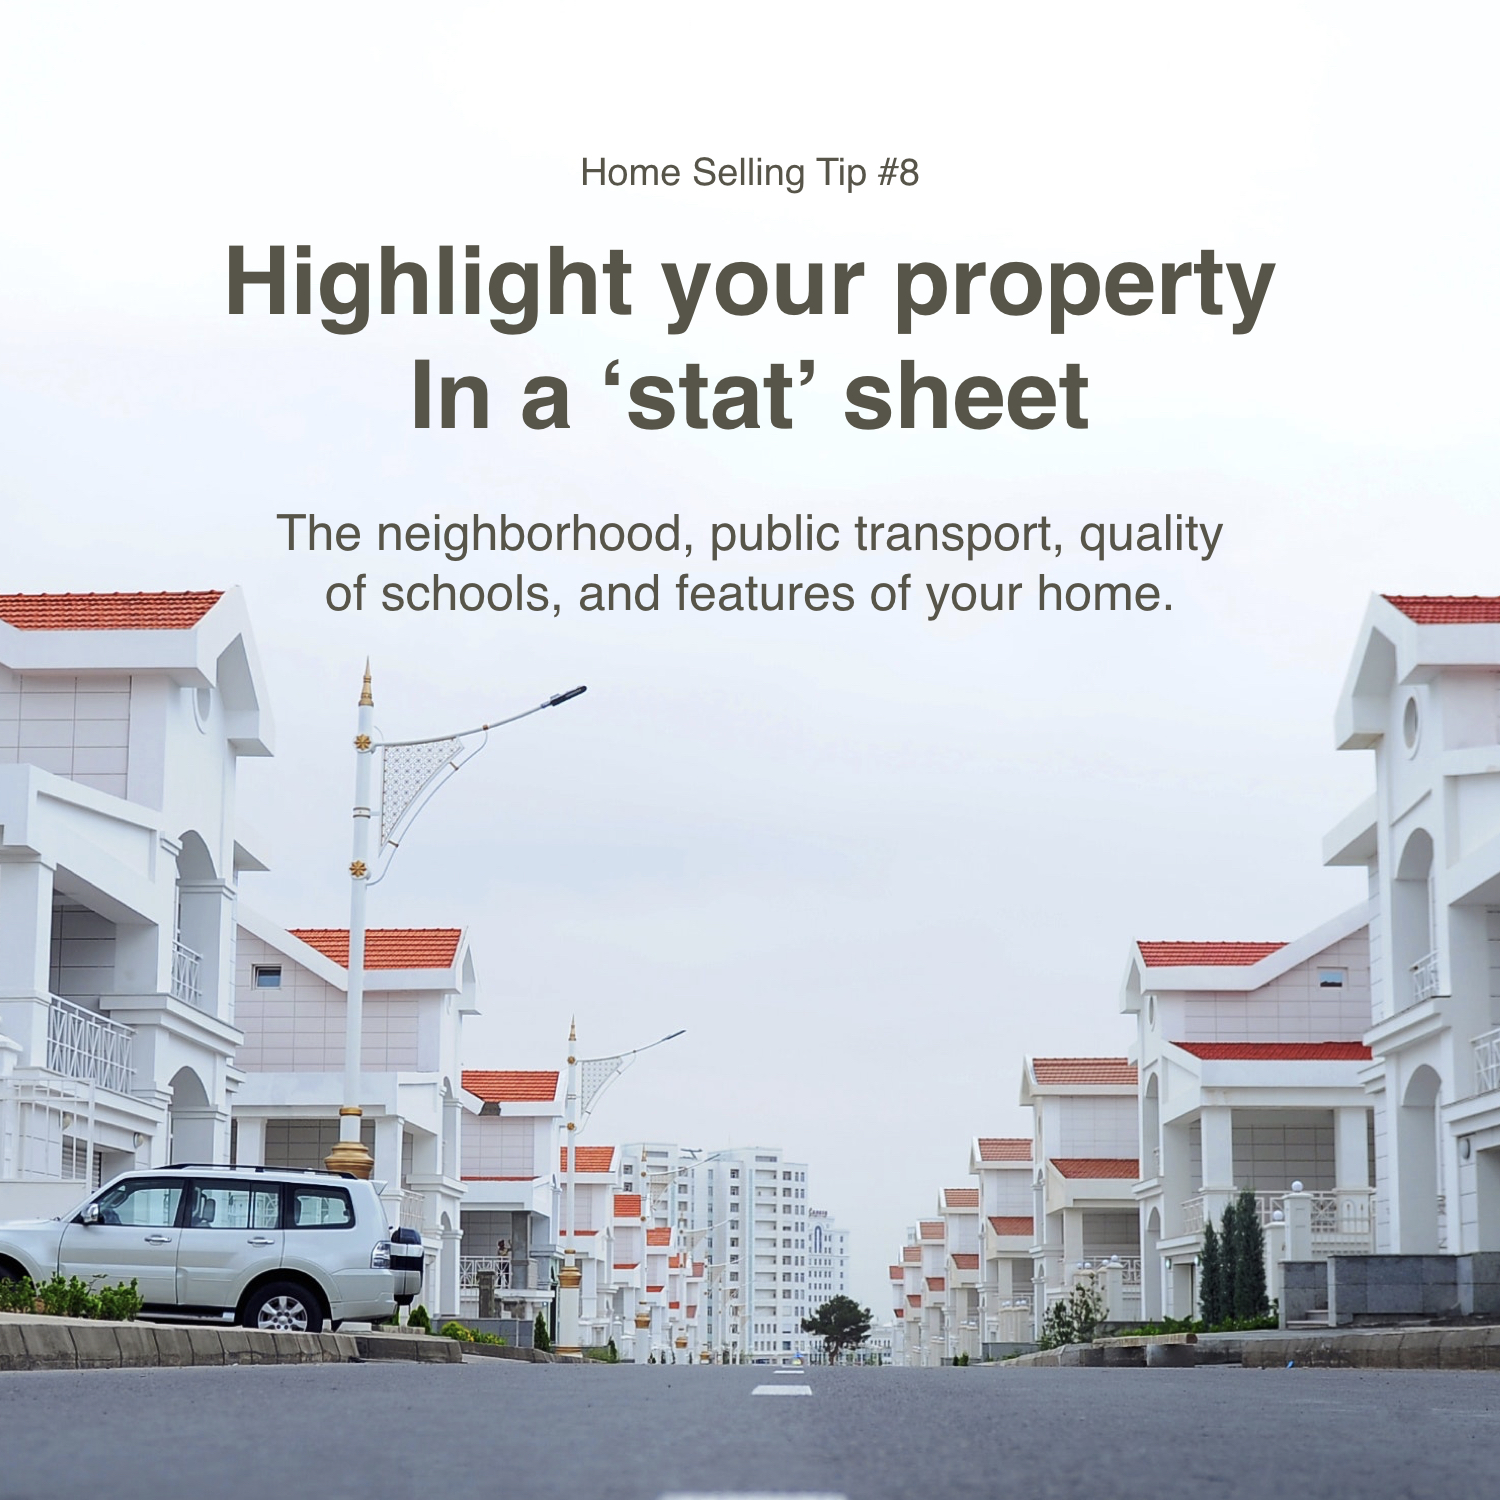 Home Selling Tip #8: Highlight Your Property in a Stat Sheet